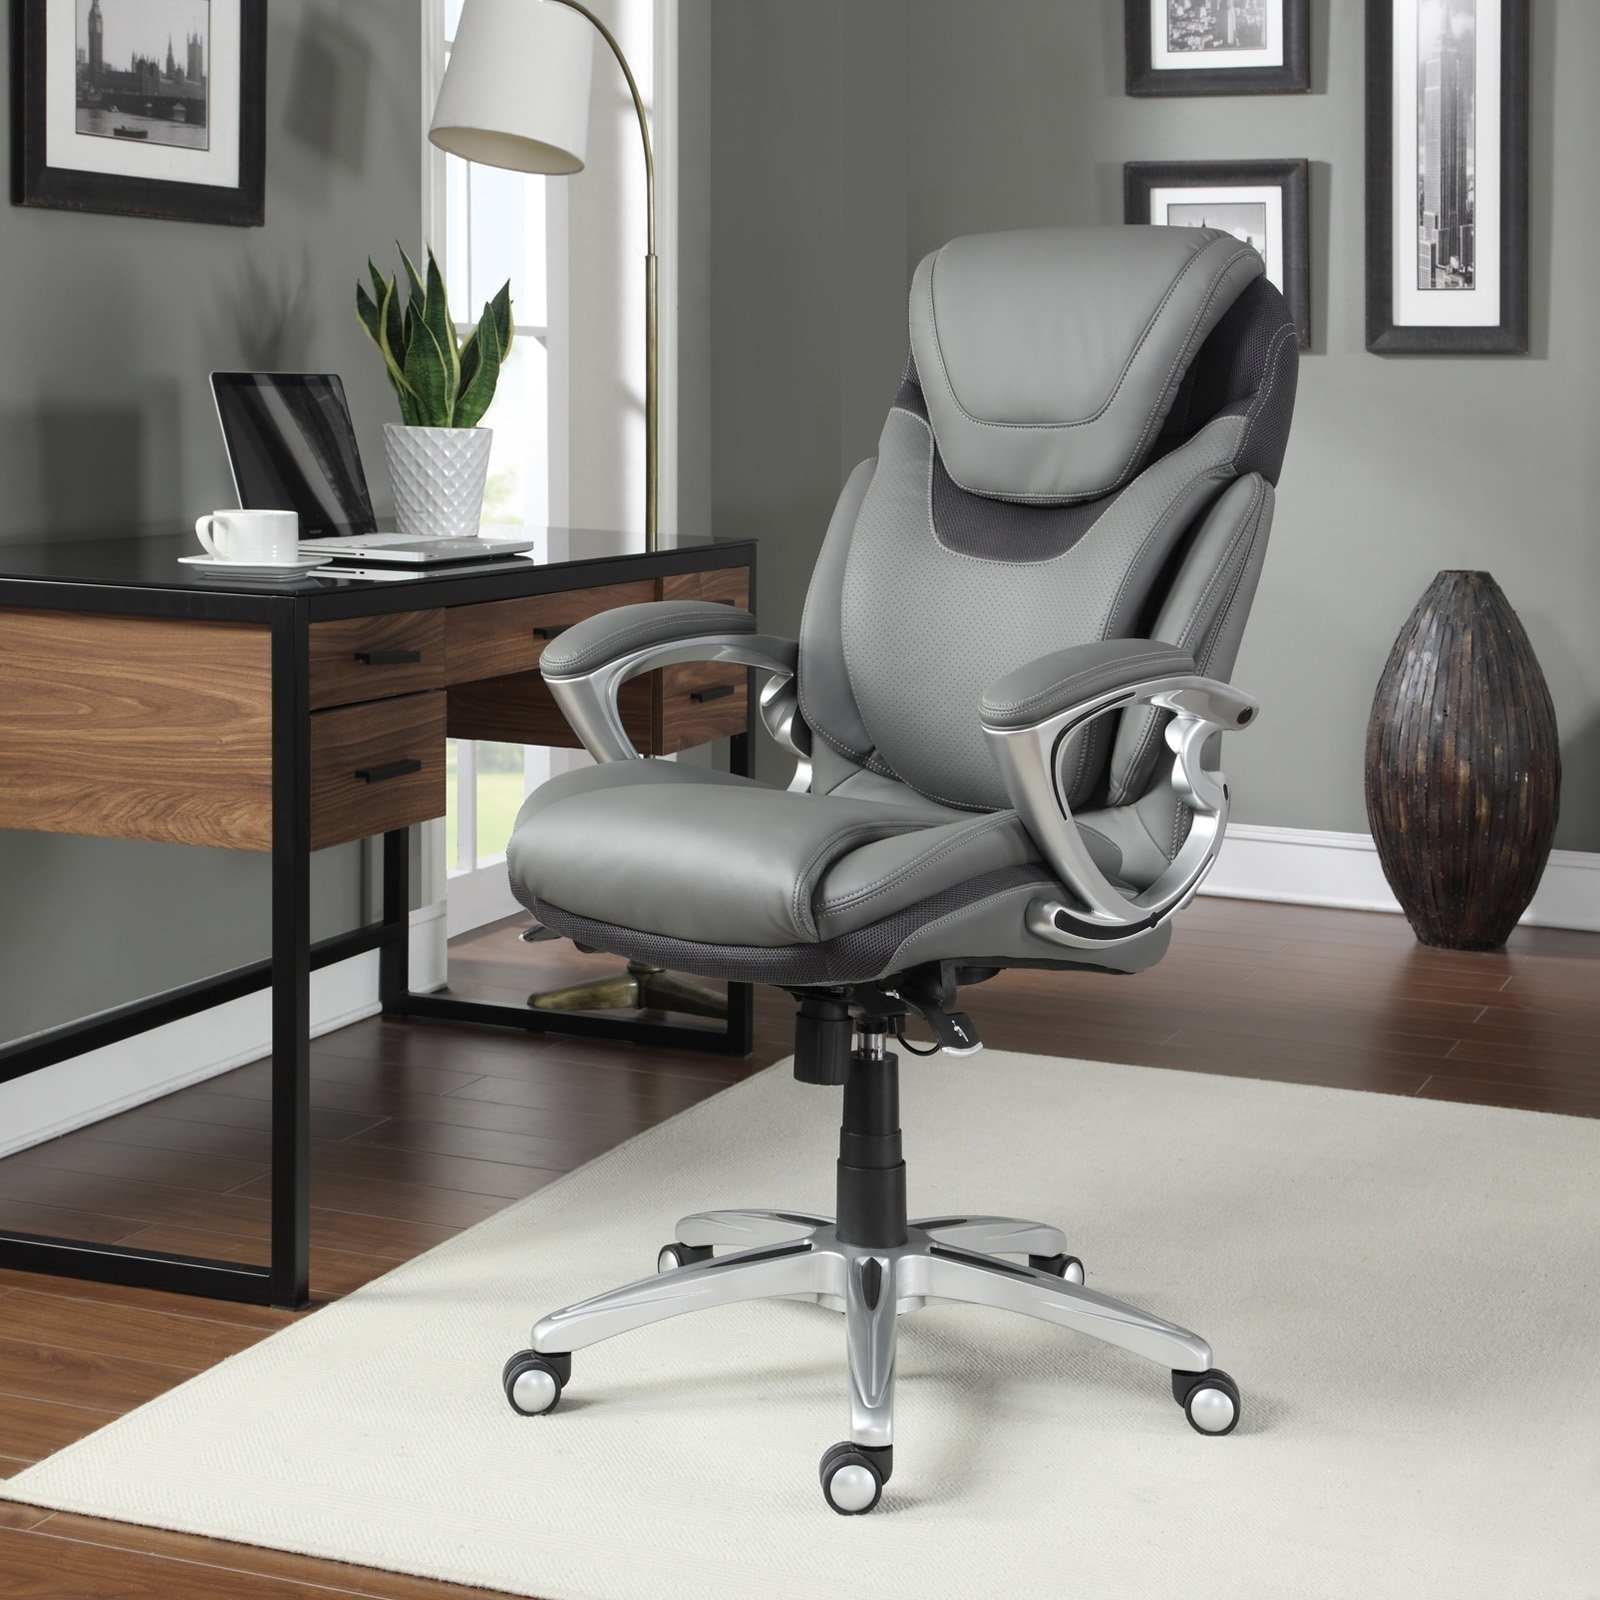 Leather Executive Office Chairs Regarding Famous Gray Leather Executive Office Chair • Office Chairs (View 16 of 20)